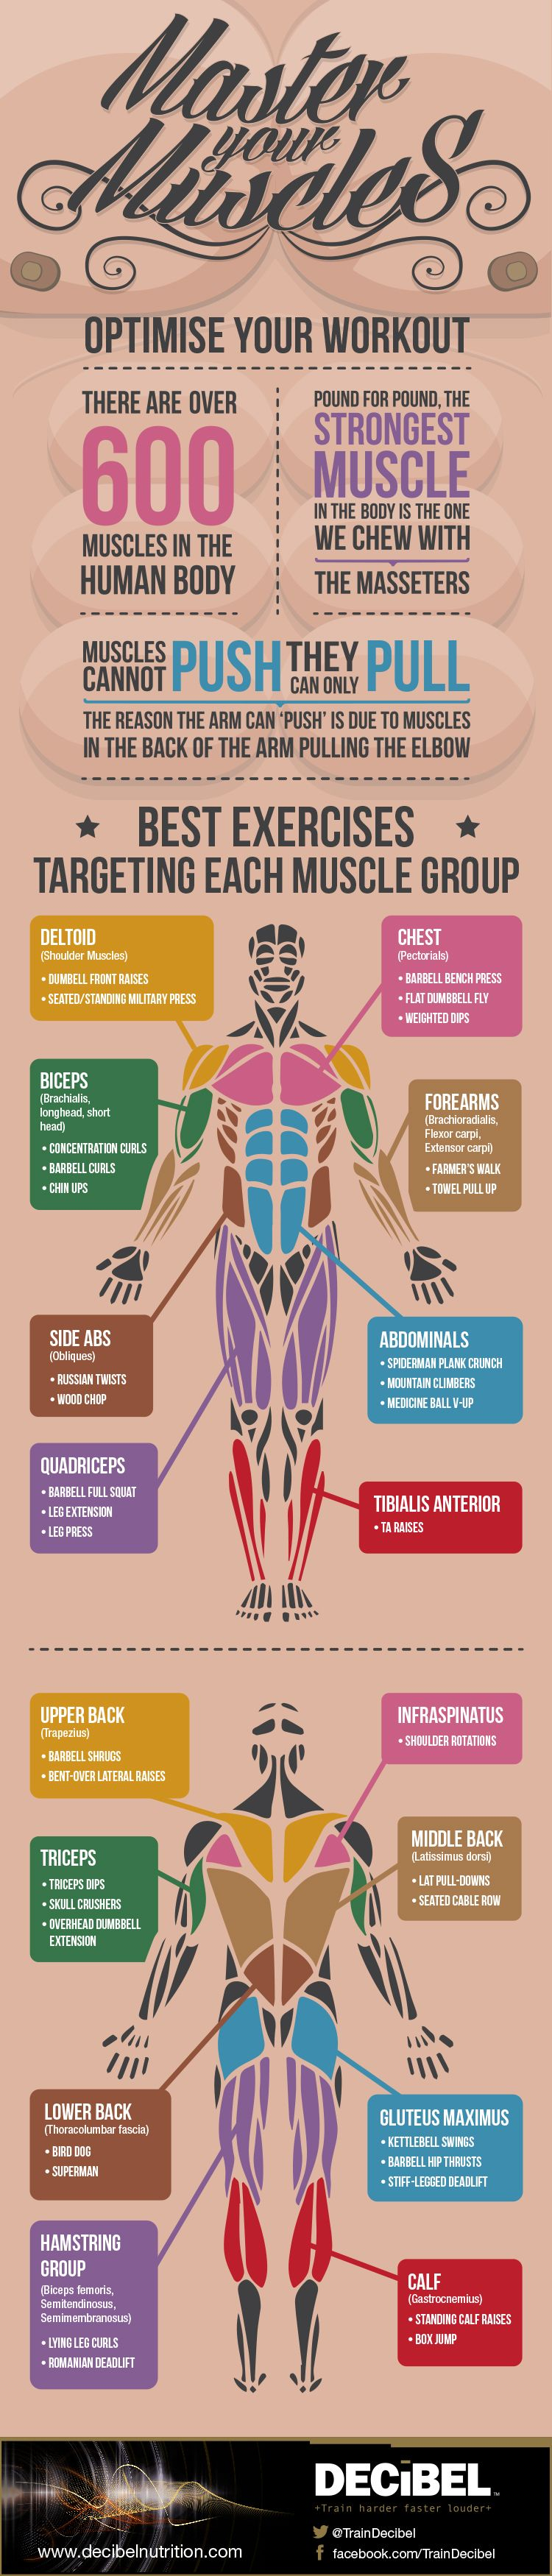 Master Your Muscles - Optimise your workout | Ejercicios, Ejercicio ...